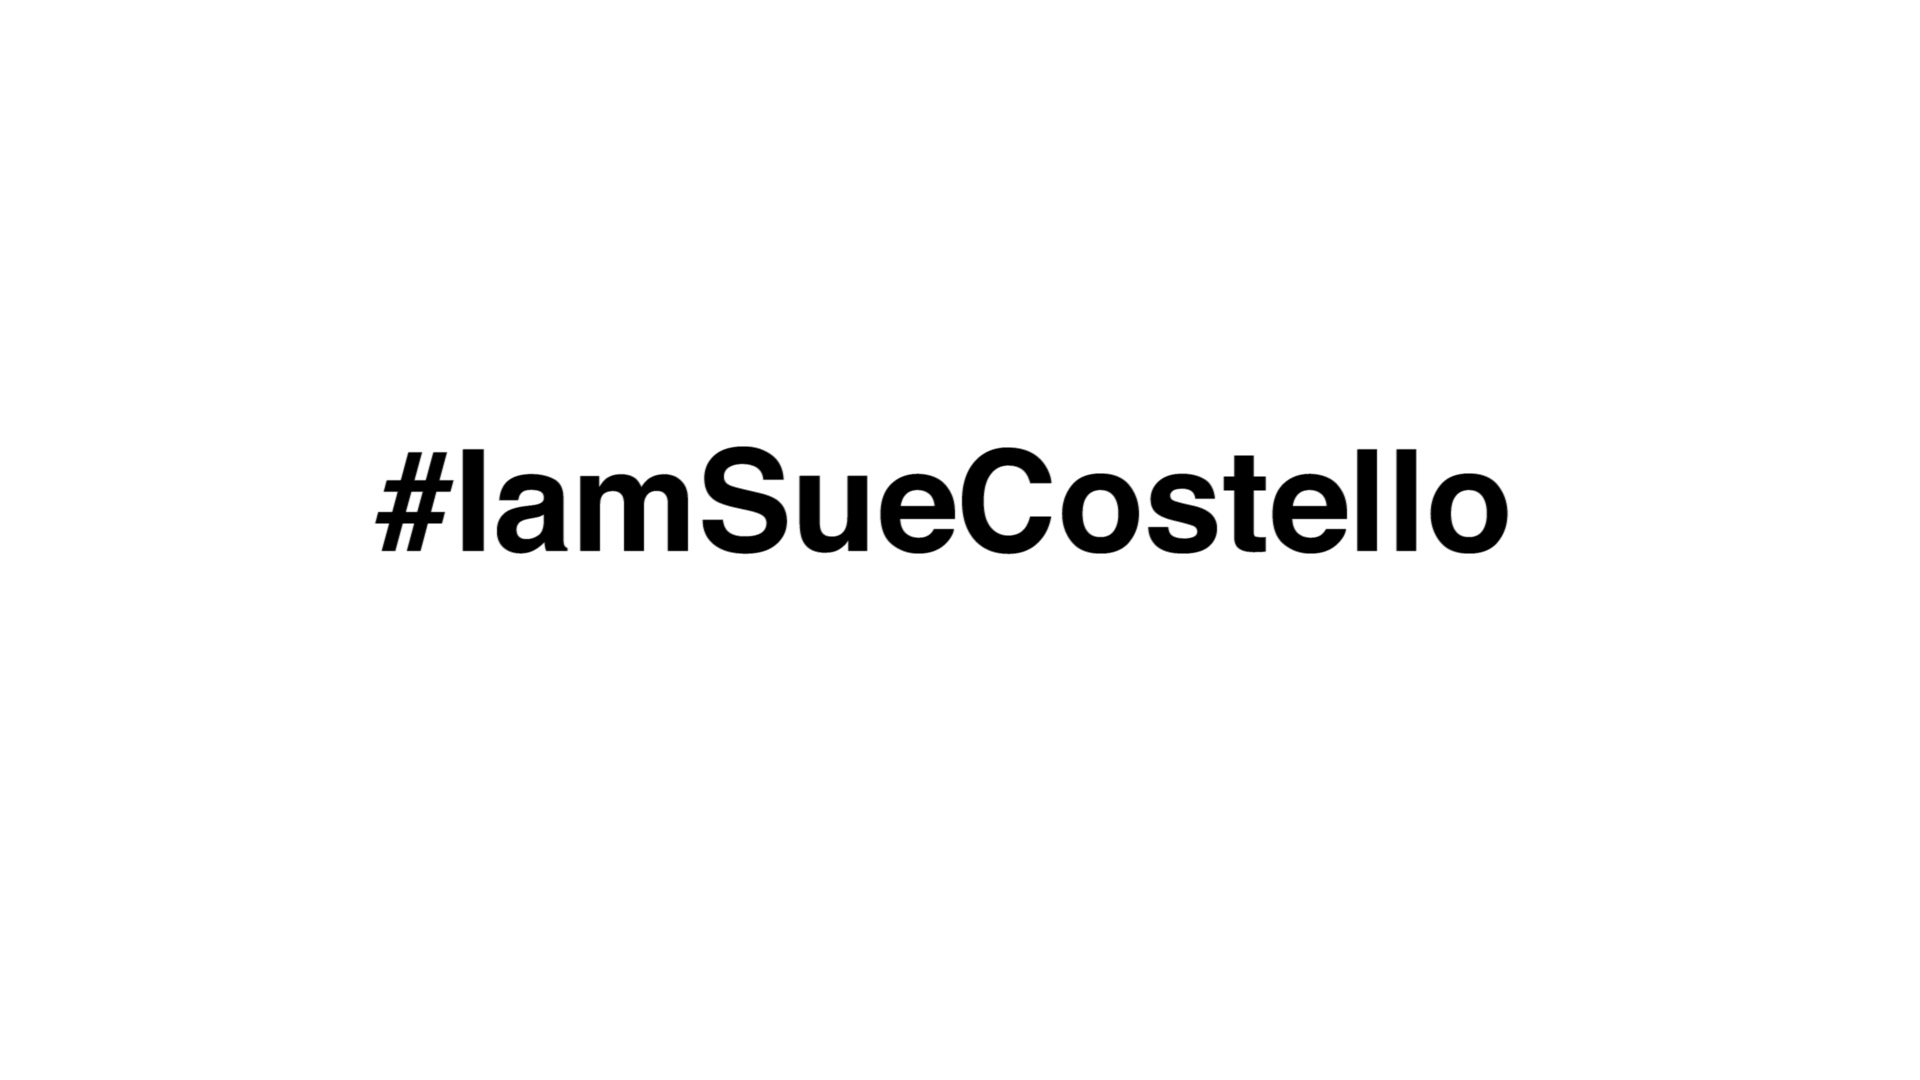 #IamSueCostello at Broadway Comedy Club on Wednesday, April 26th